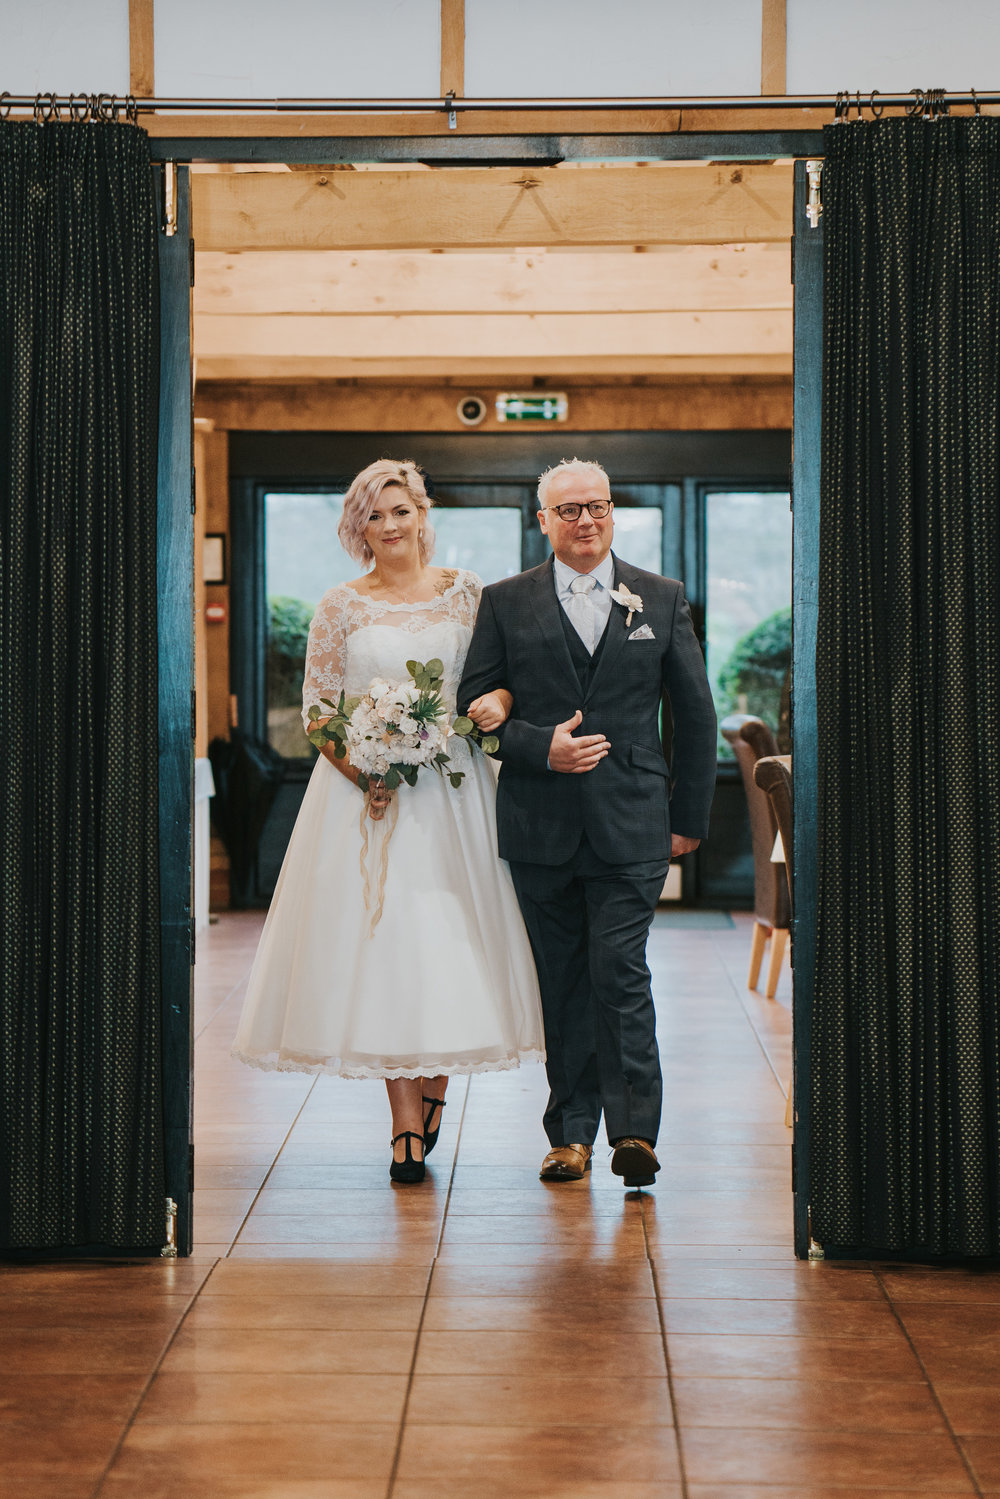 rhia-james-rustic-crabbs-barn-vintage-50s-retro-wedding-grace-elizabeth-colchester-essex-alternative-relaxed-wedding-family-photography-devon-suffolk-norfolk-essex (69 of 138).jpg